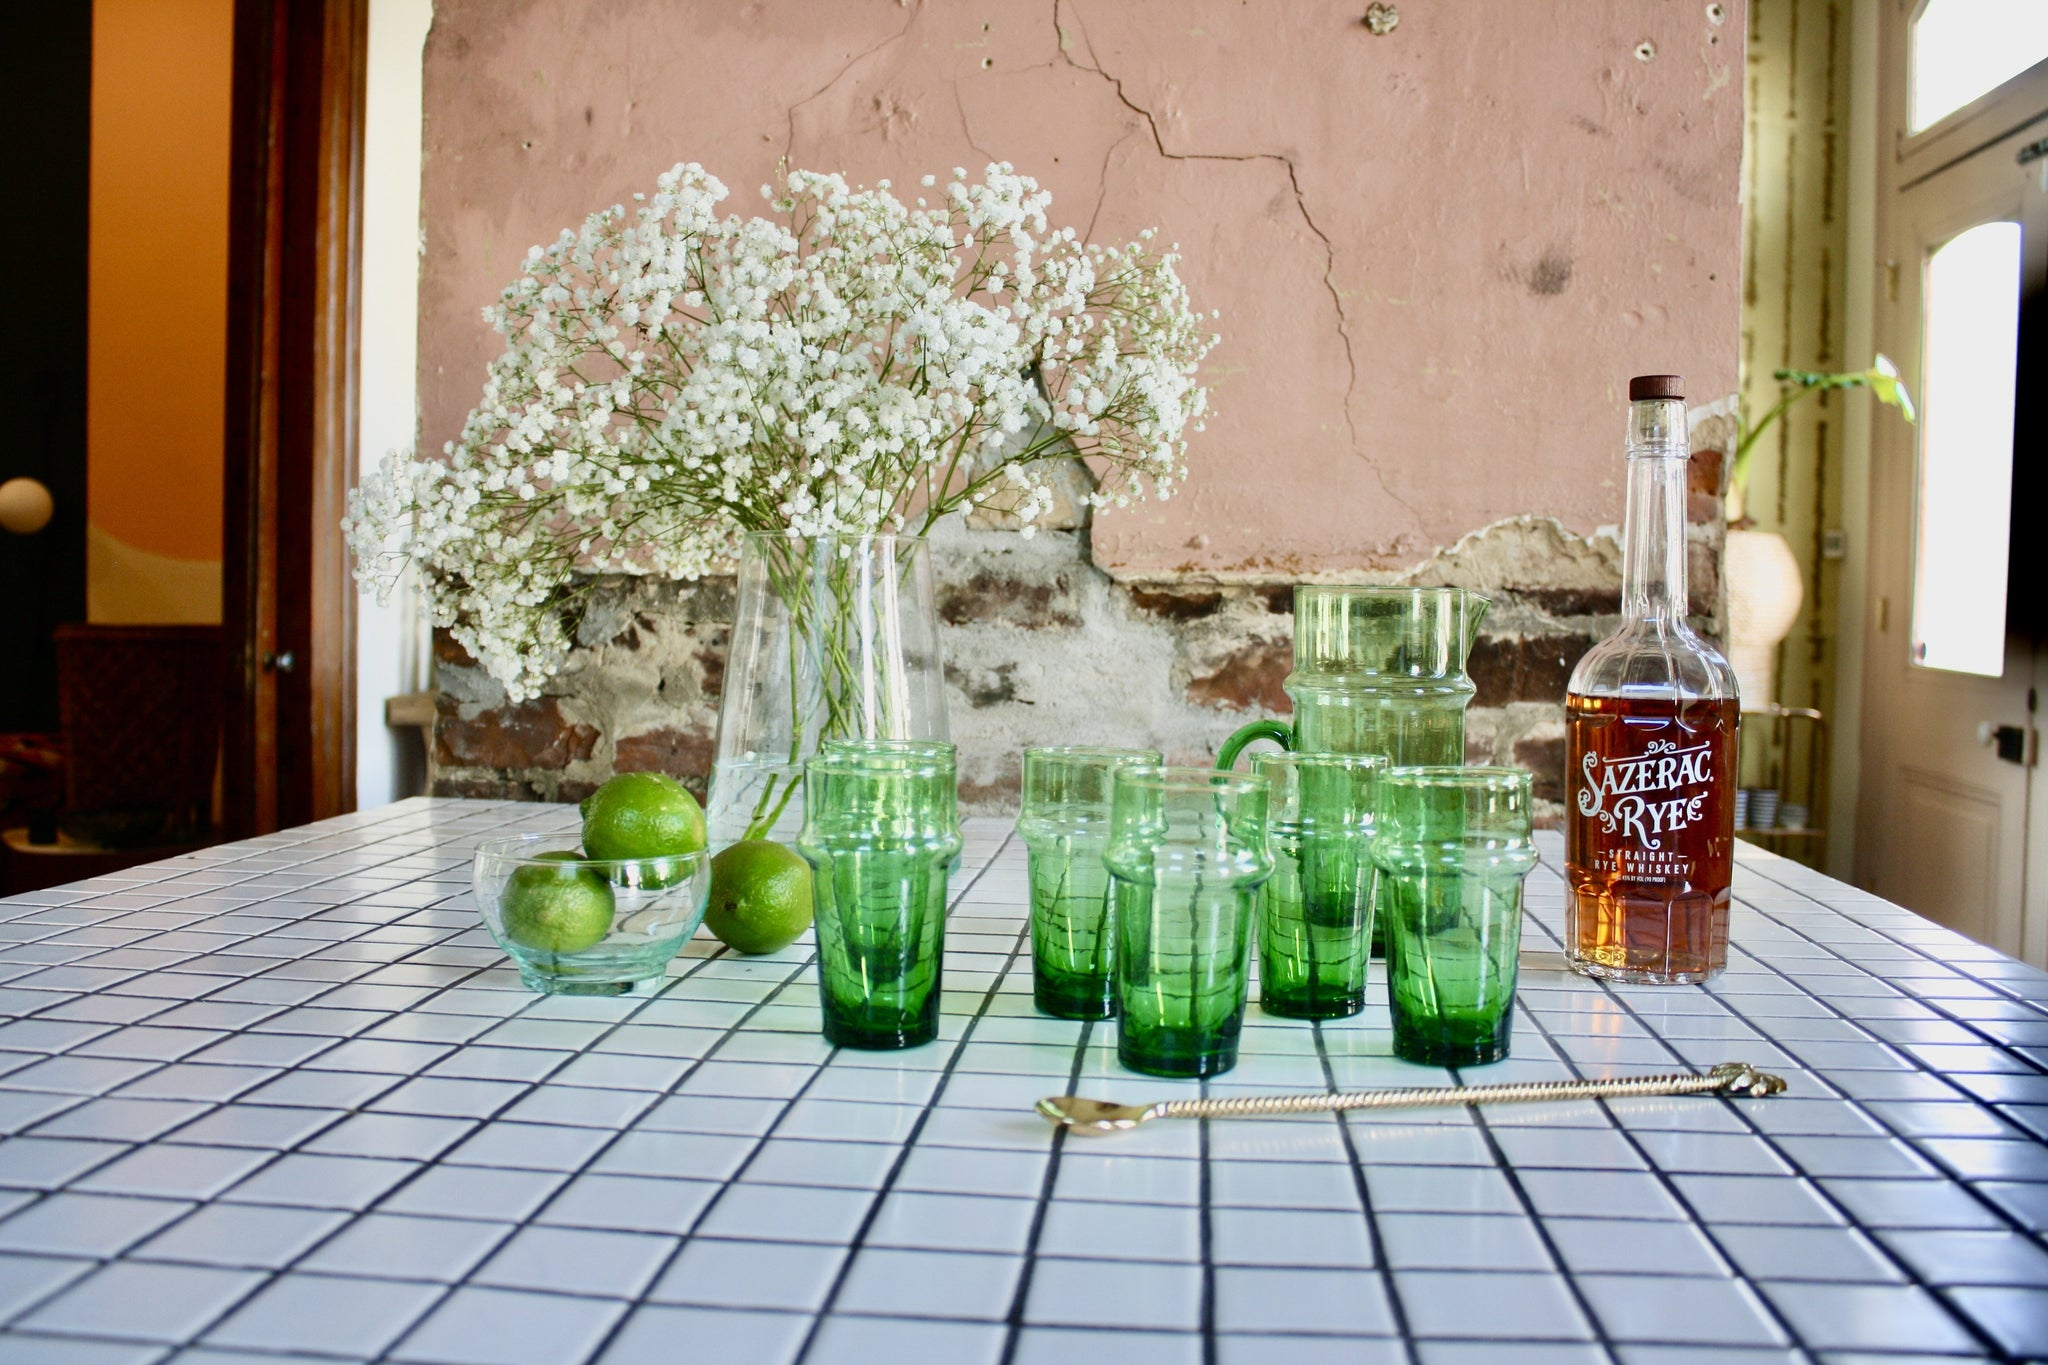 Set of 8 green handblown glasses & 1 matching pitcher handmade in Morocco from recycled glass by artisans using traditional techniques since 1946.